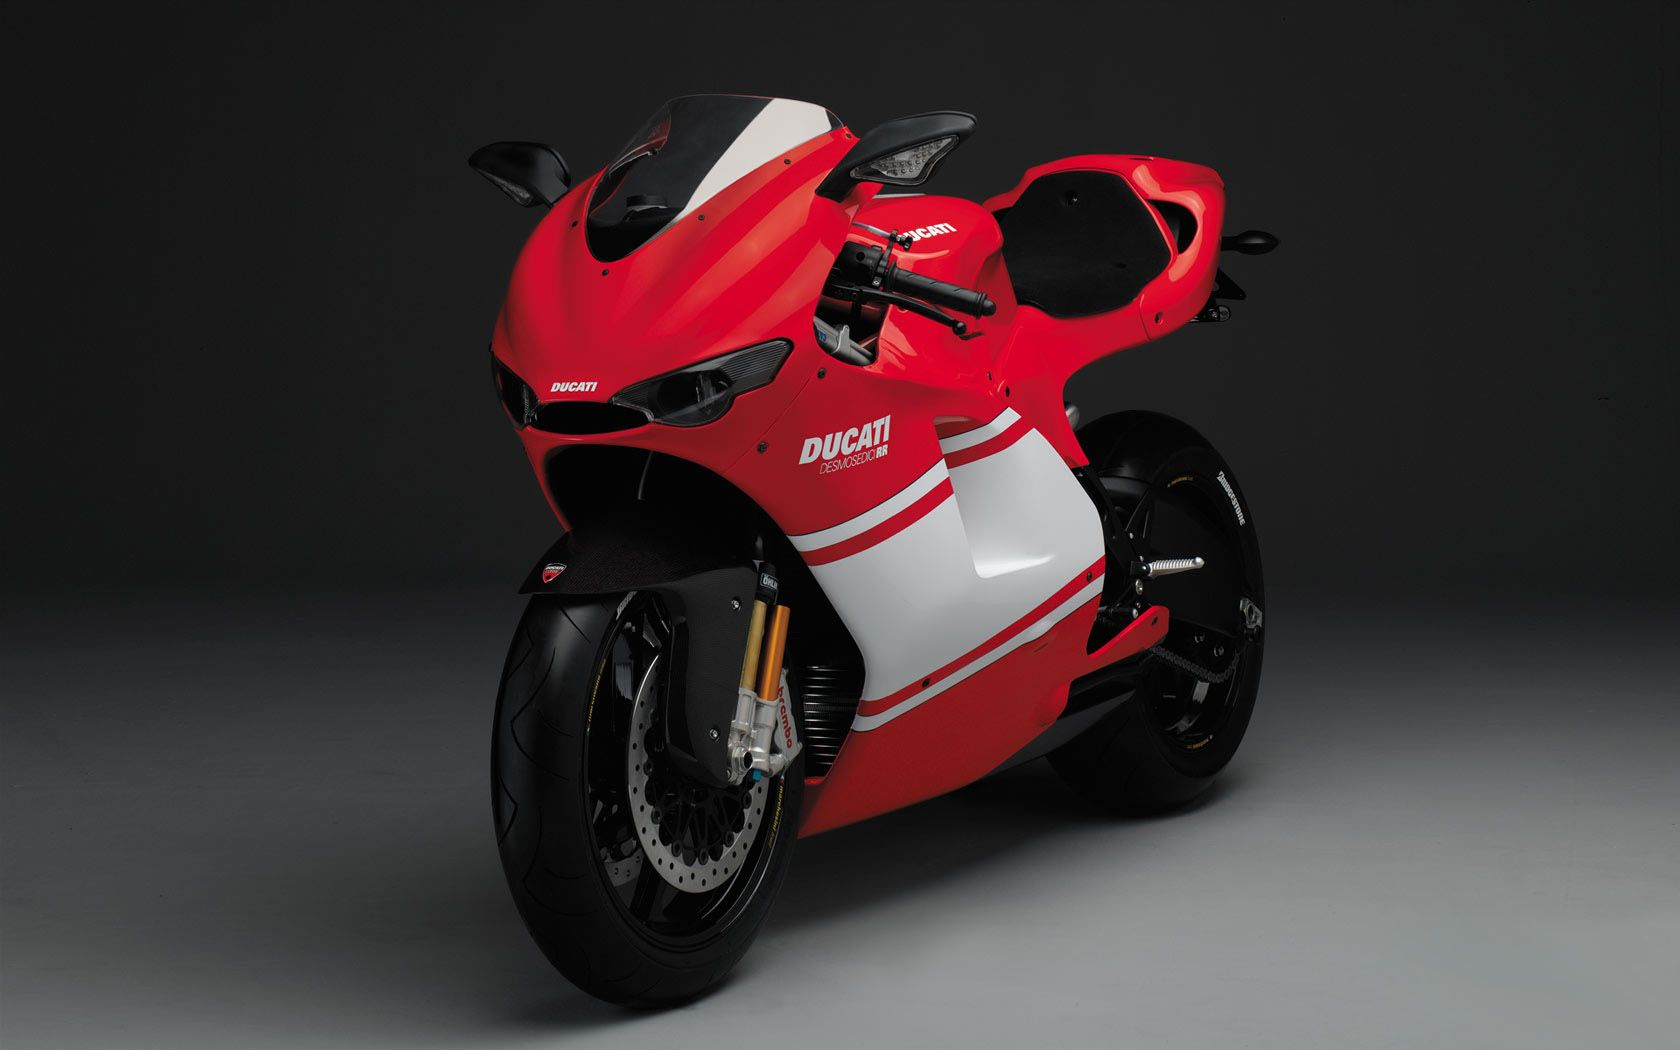 wallpapers tagged with ducati ducati hd wallpapers page 1920×1440